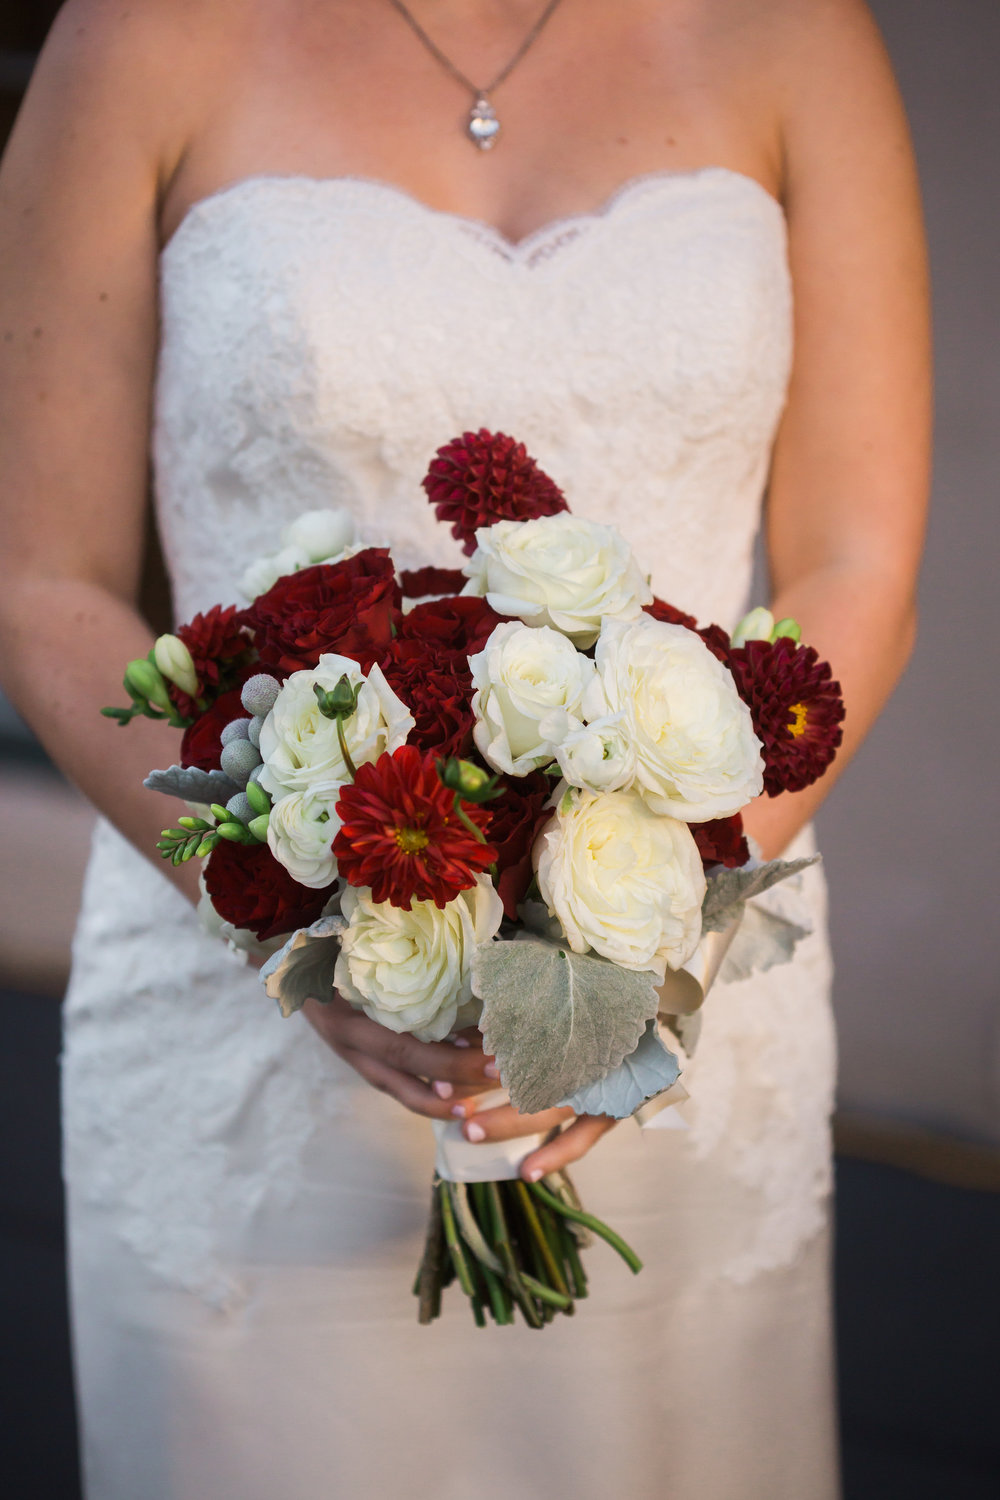 Wedding at the Trolley Station in Galveston, TX | Houston and Galveston Wedding Planners | Marsala and White bouquet